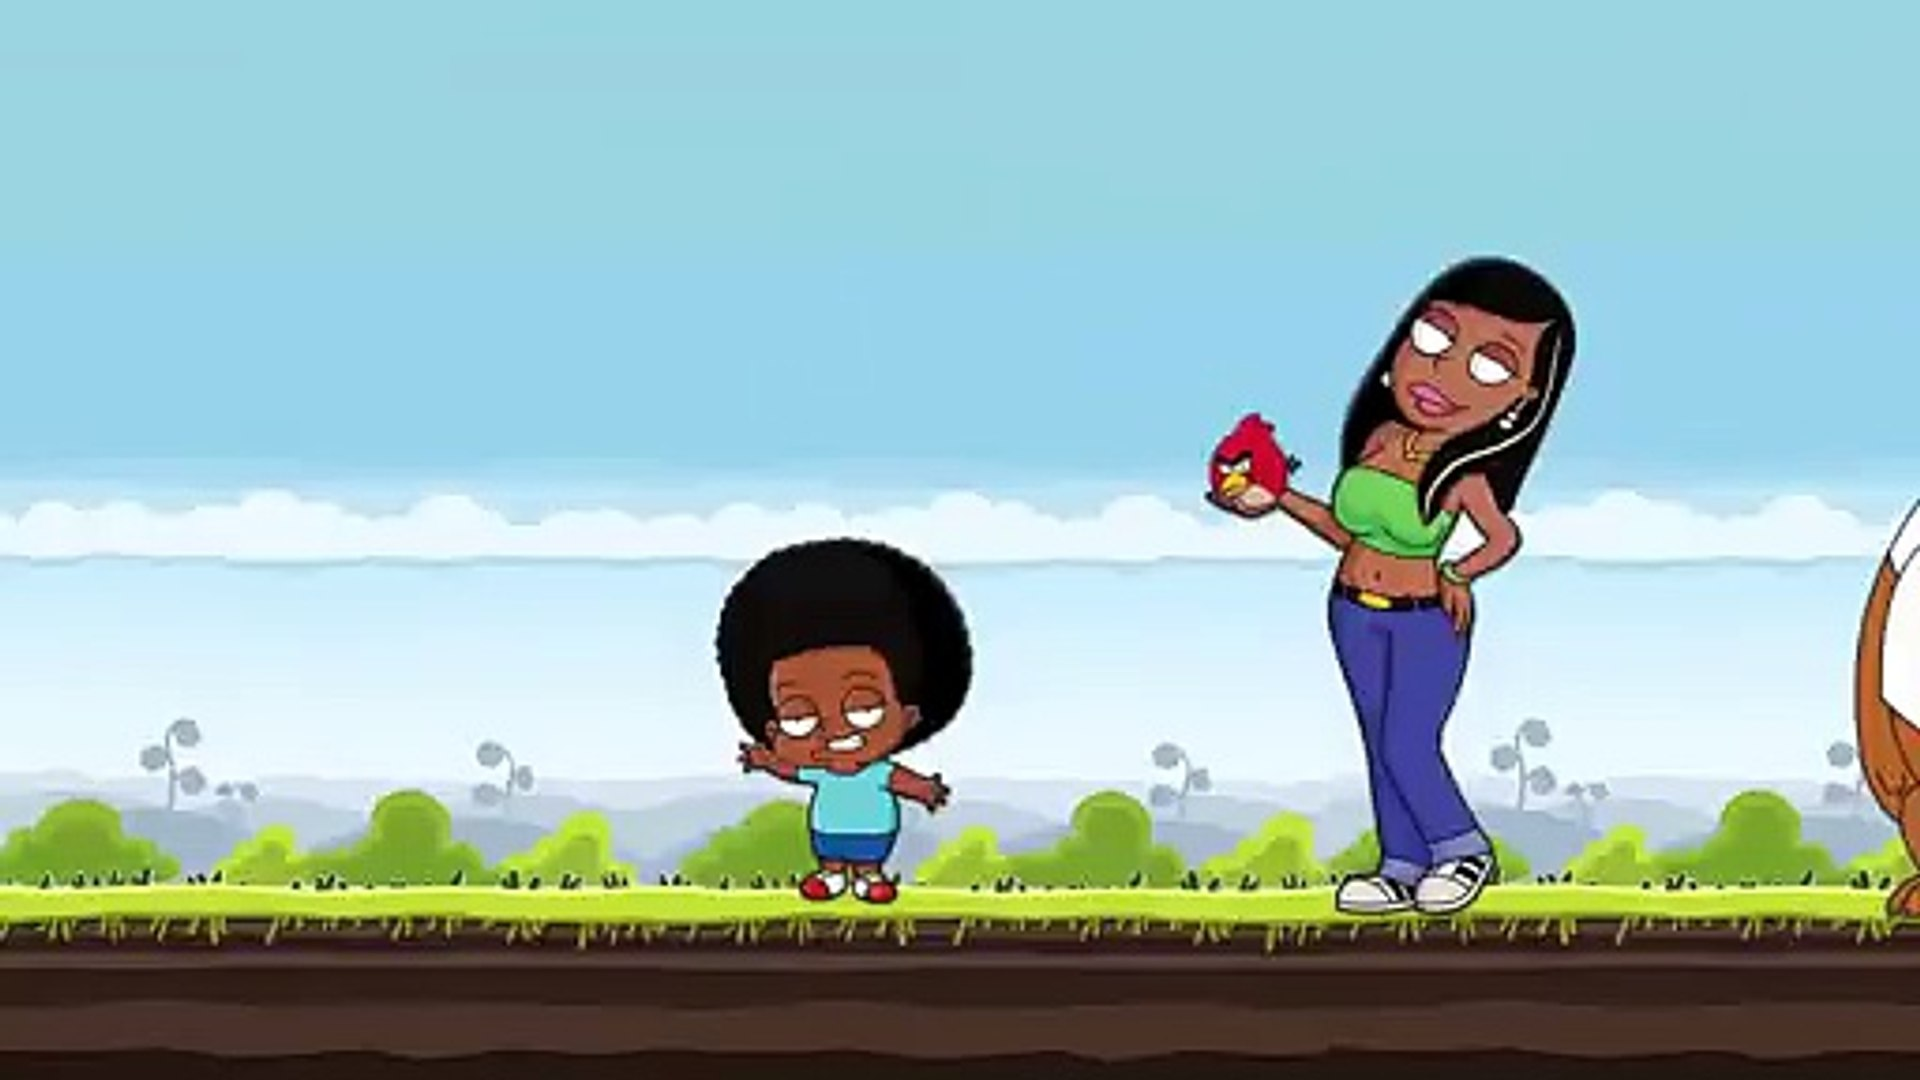 Angry Cleveland Show(Angry Birds meet the Cleveland Show)